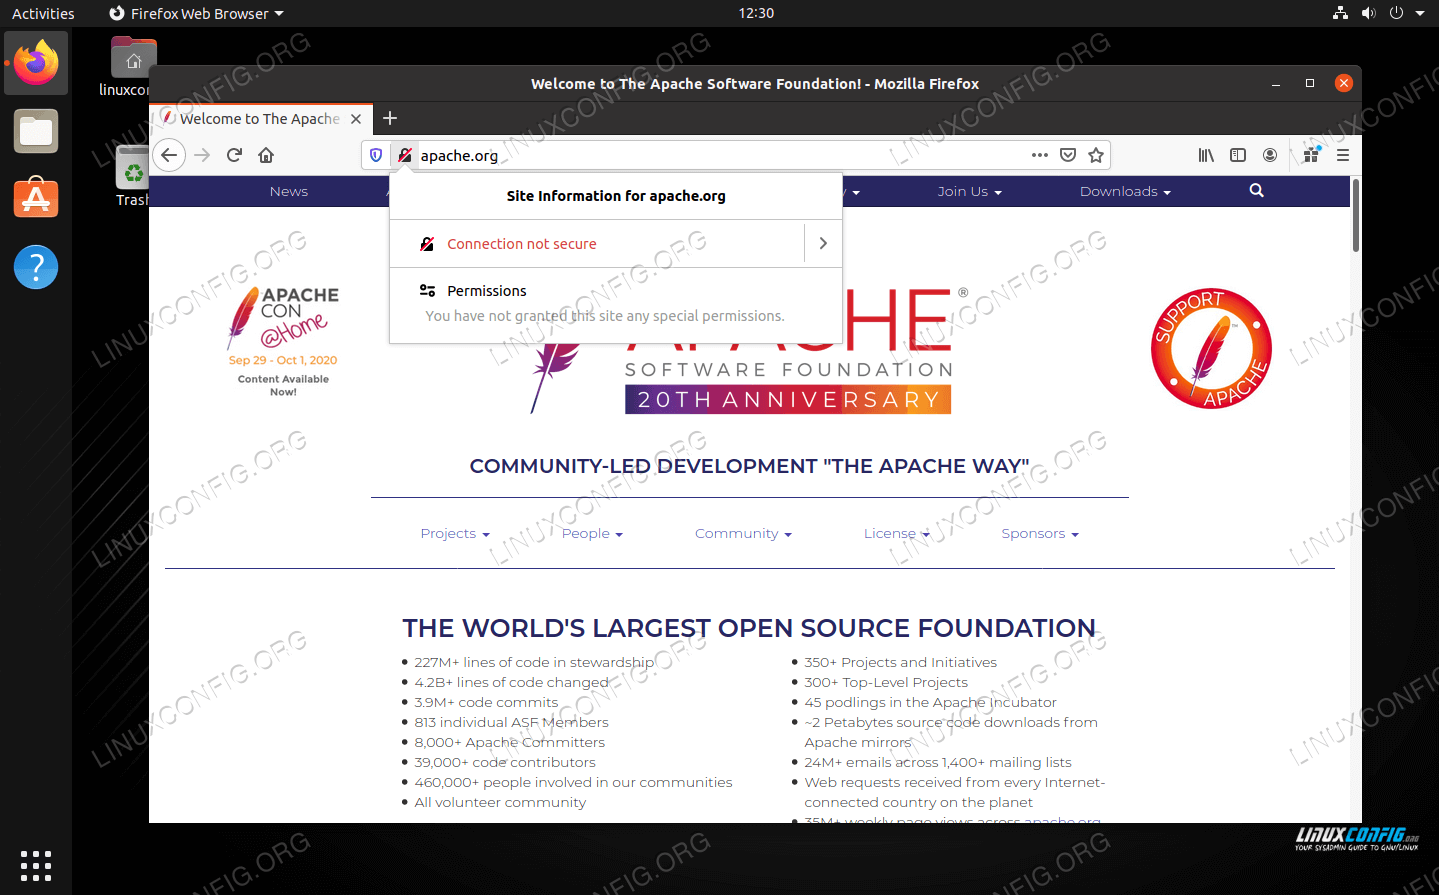 Firefox warning that the connection to this website is not secure